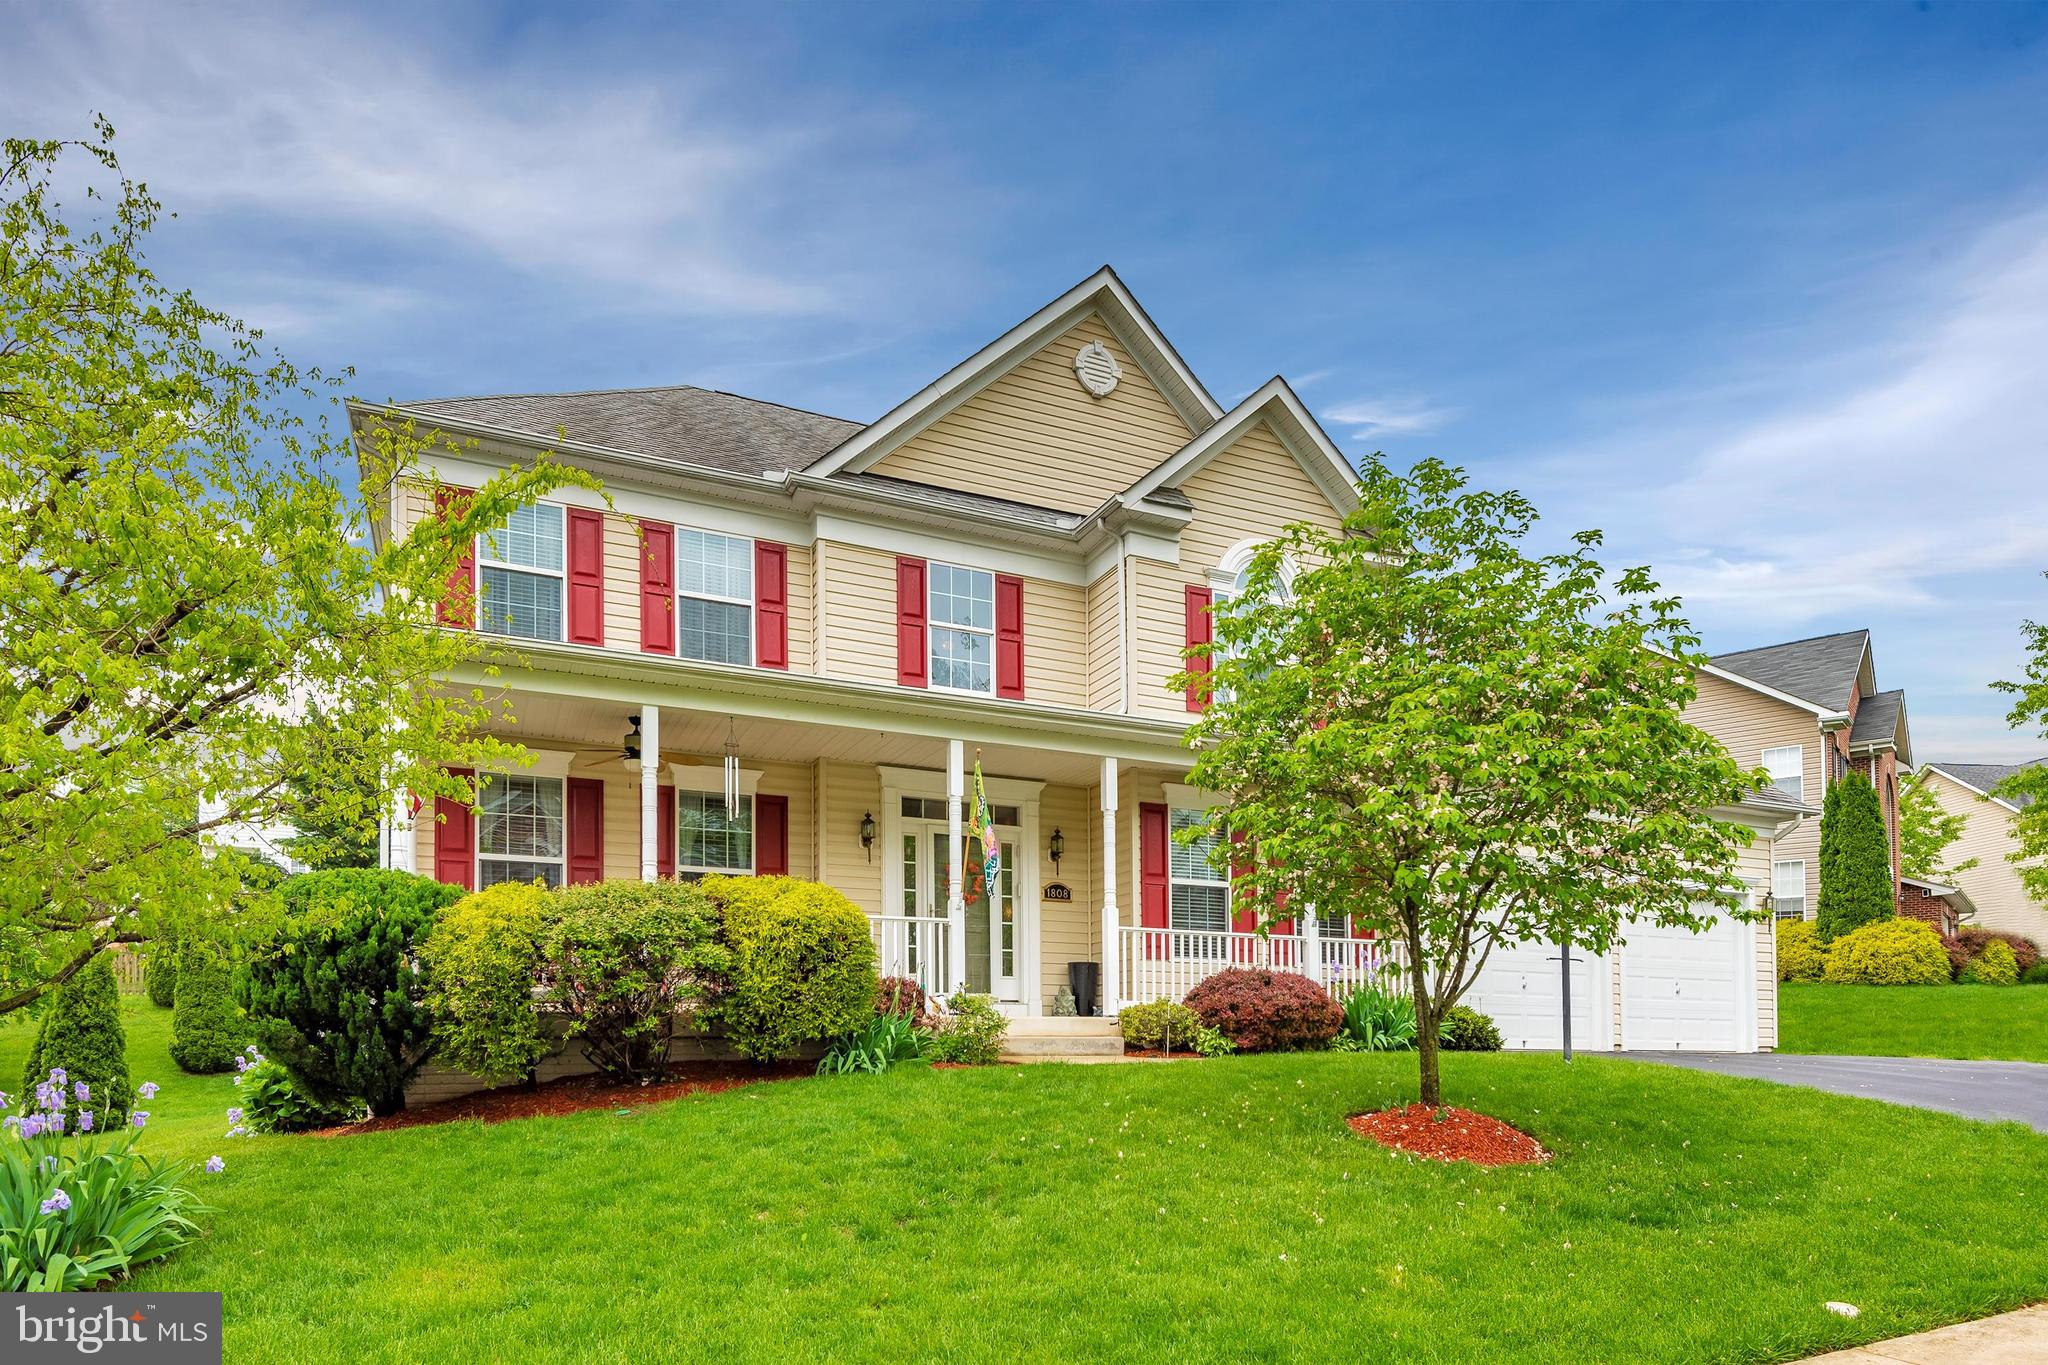 1808 GREYSENS FERRY COURT, POINT OF ROCKS, MD 21777